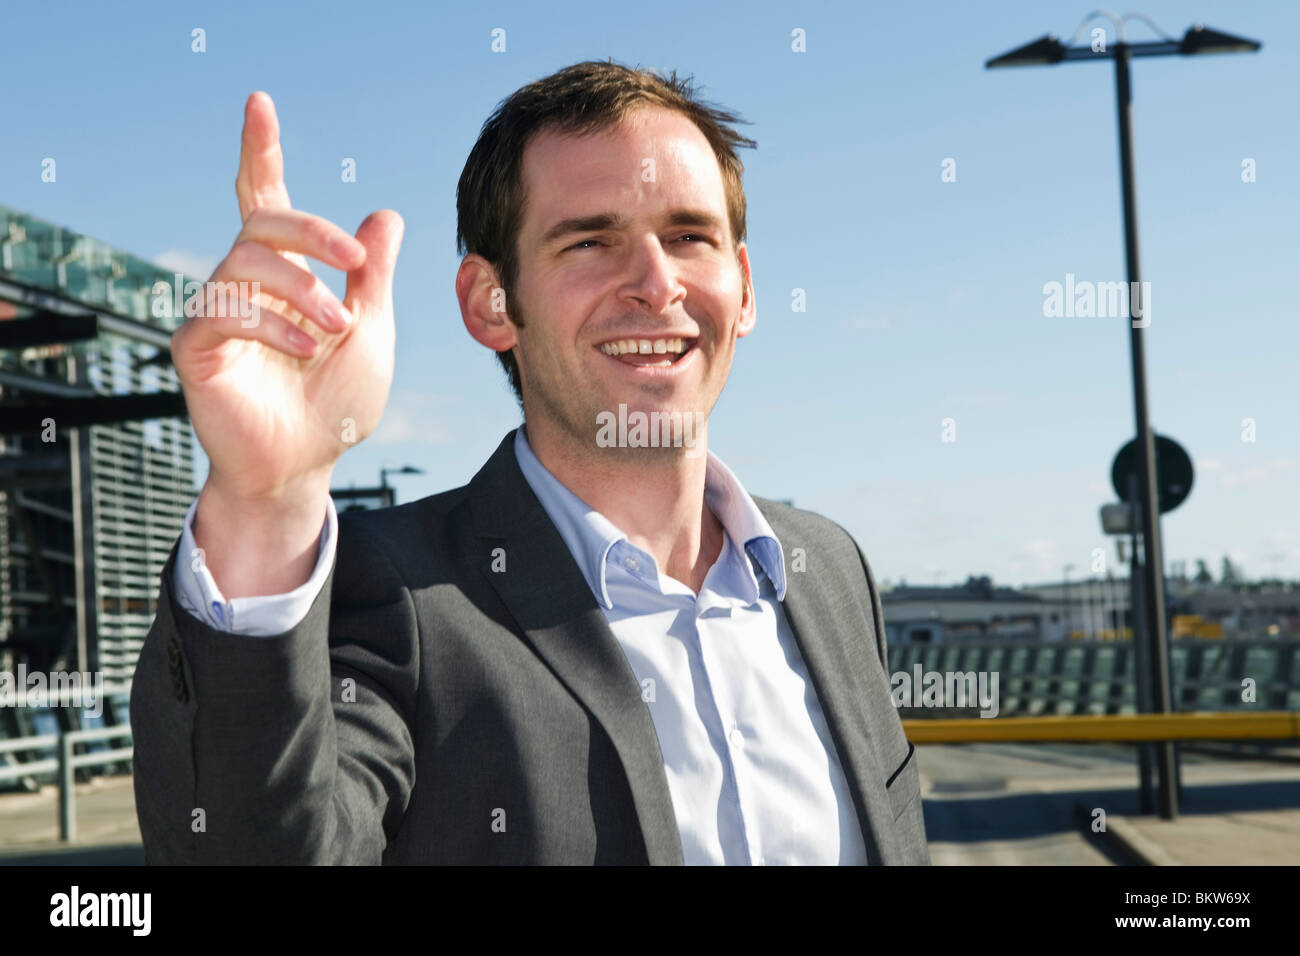 Man outside airport - Stock Image